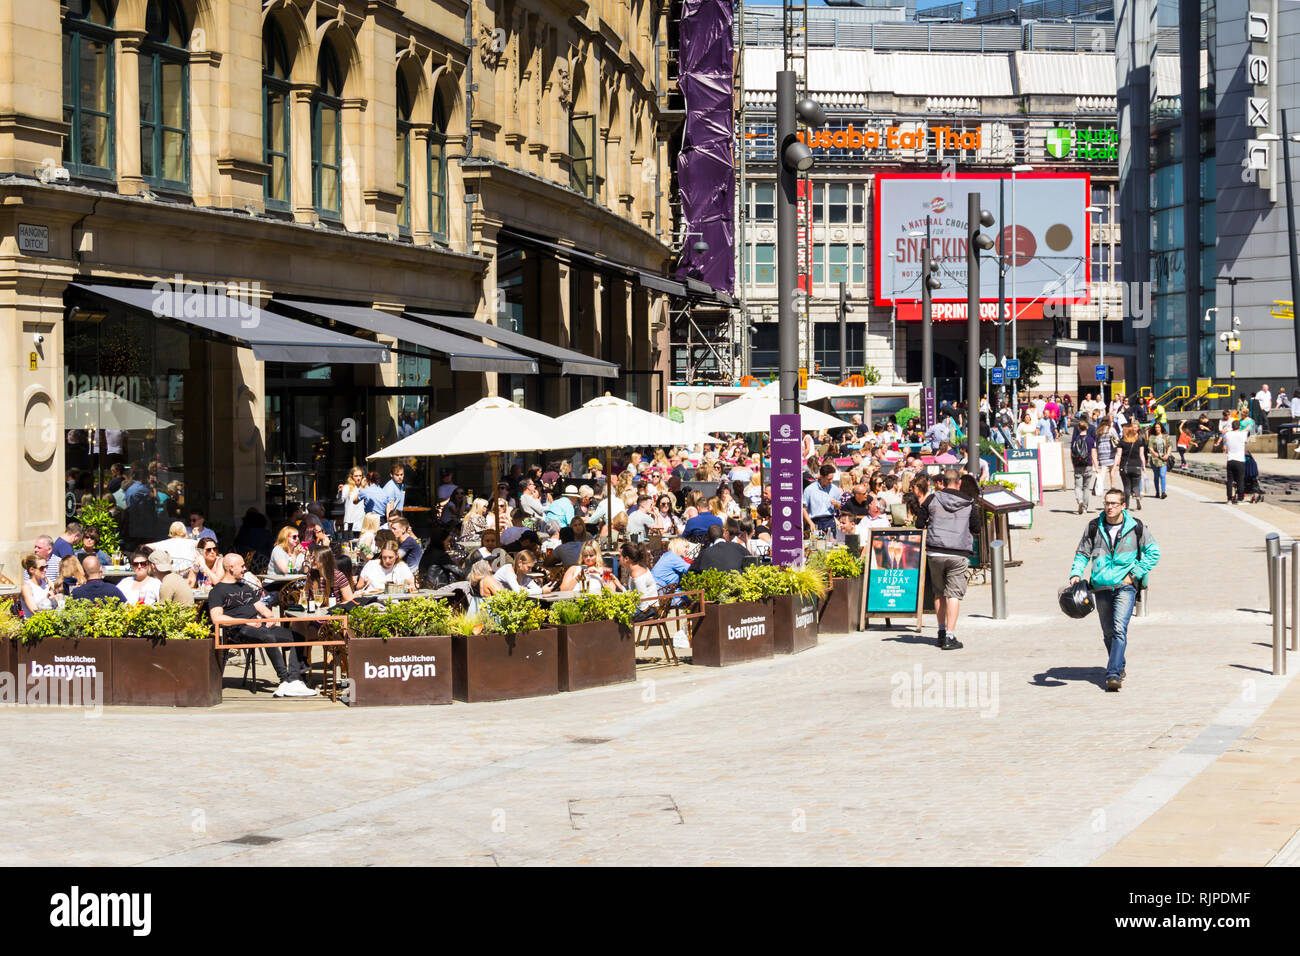 A summer day in Manchester city centre with many people sat eating and drinking outside Banyan Bar and other restaurants and bars of The Triangle, for Stock Photo